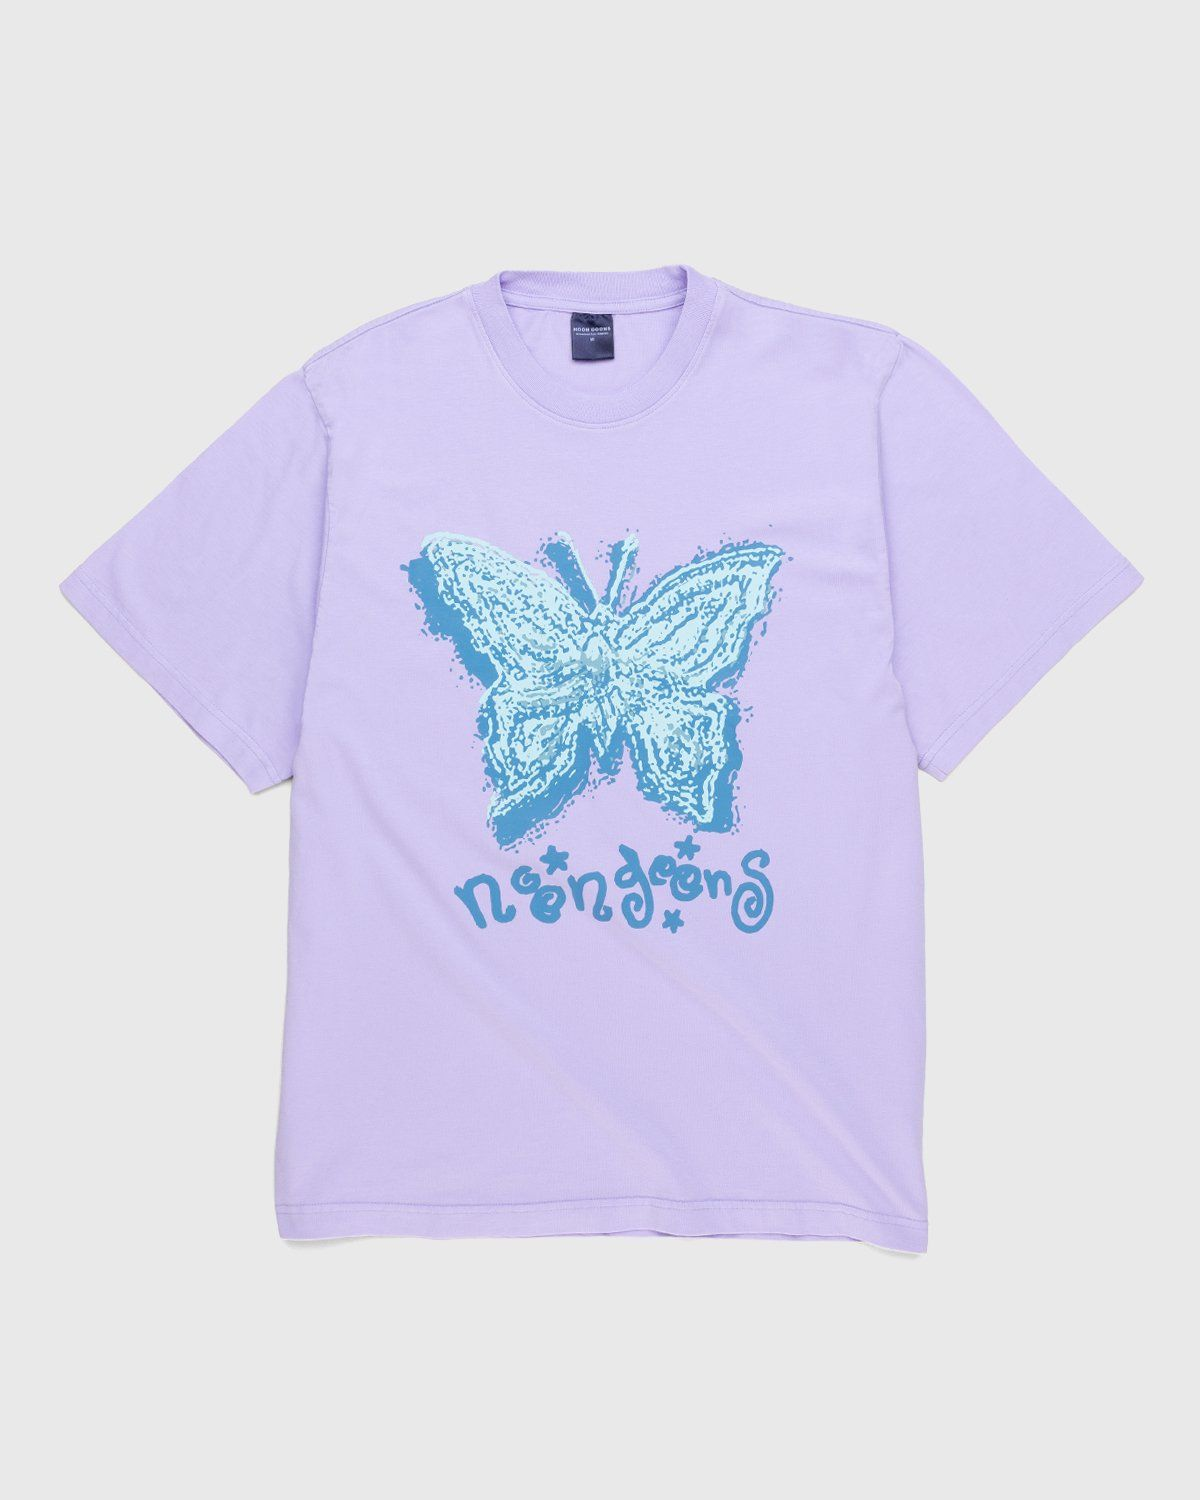 Noon Goons – Fly High T-Shirt Lavender - Image 1